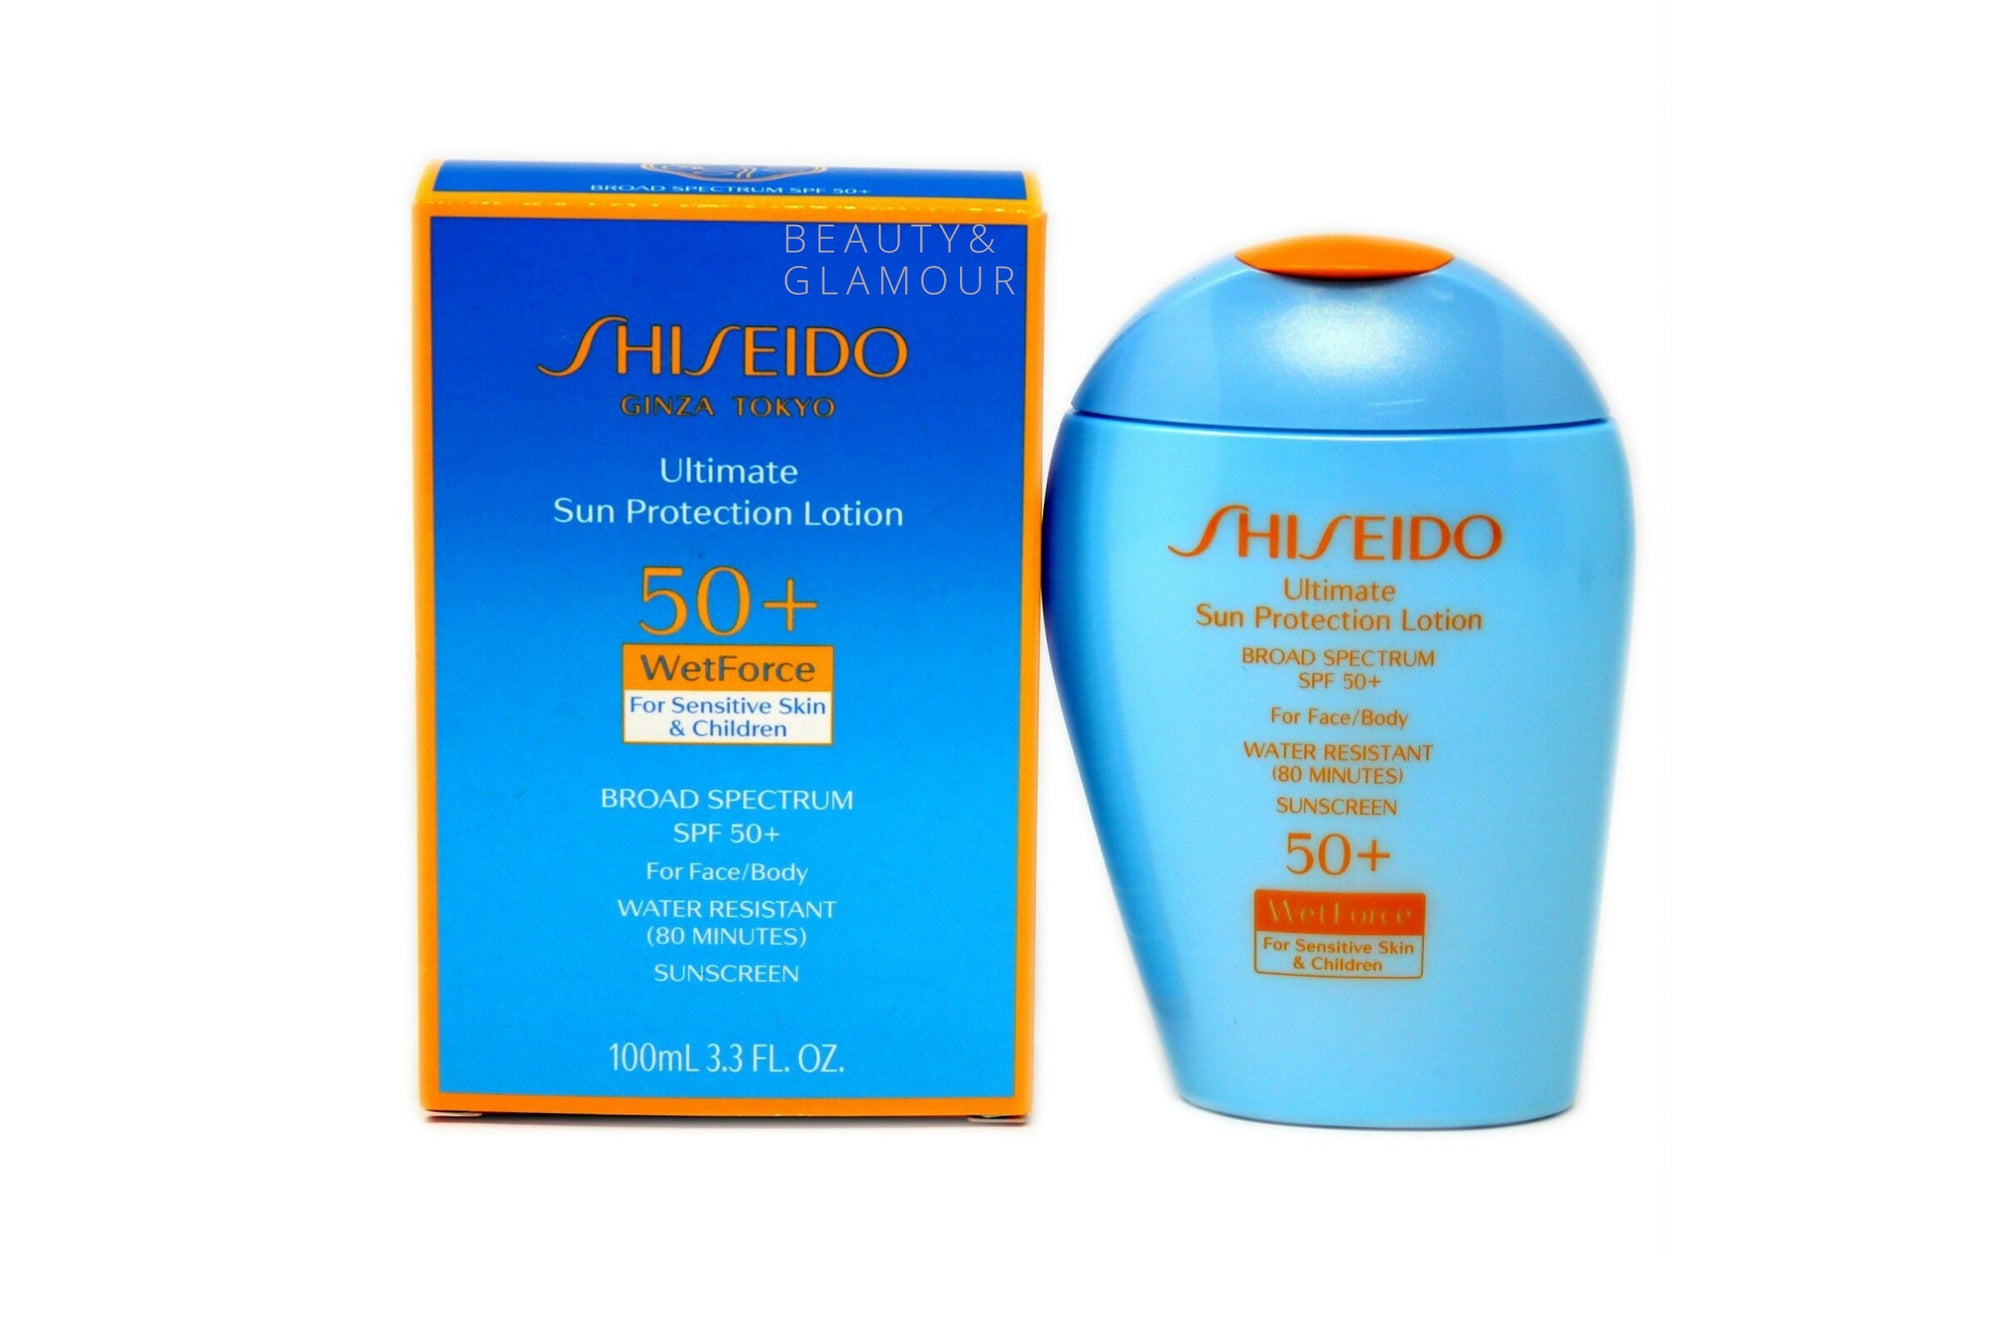 Shiseido Ultimate Sun Protection Lotion SPF 50+ Sunscreen